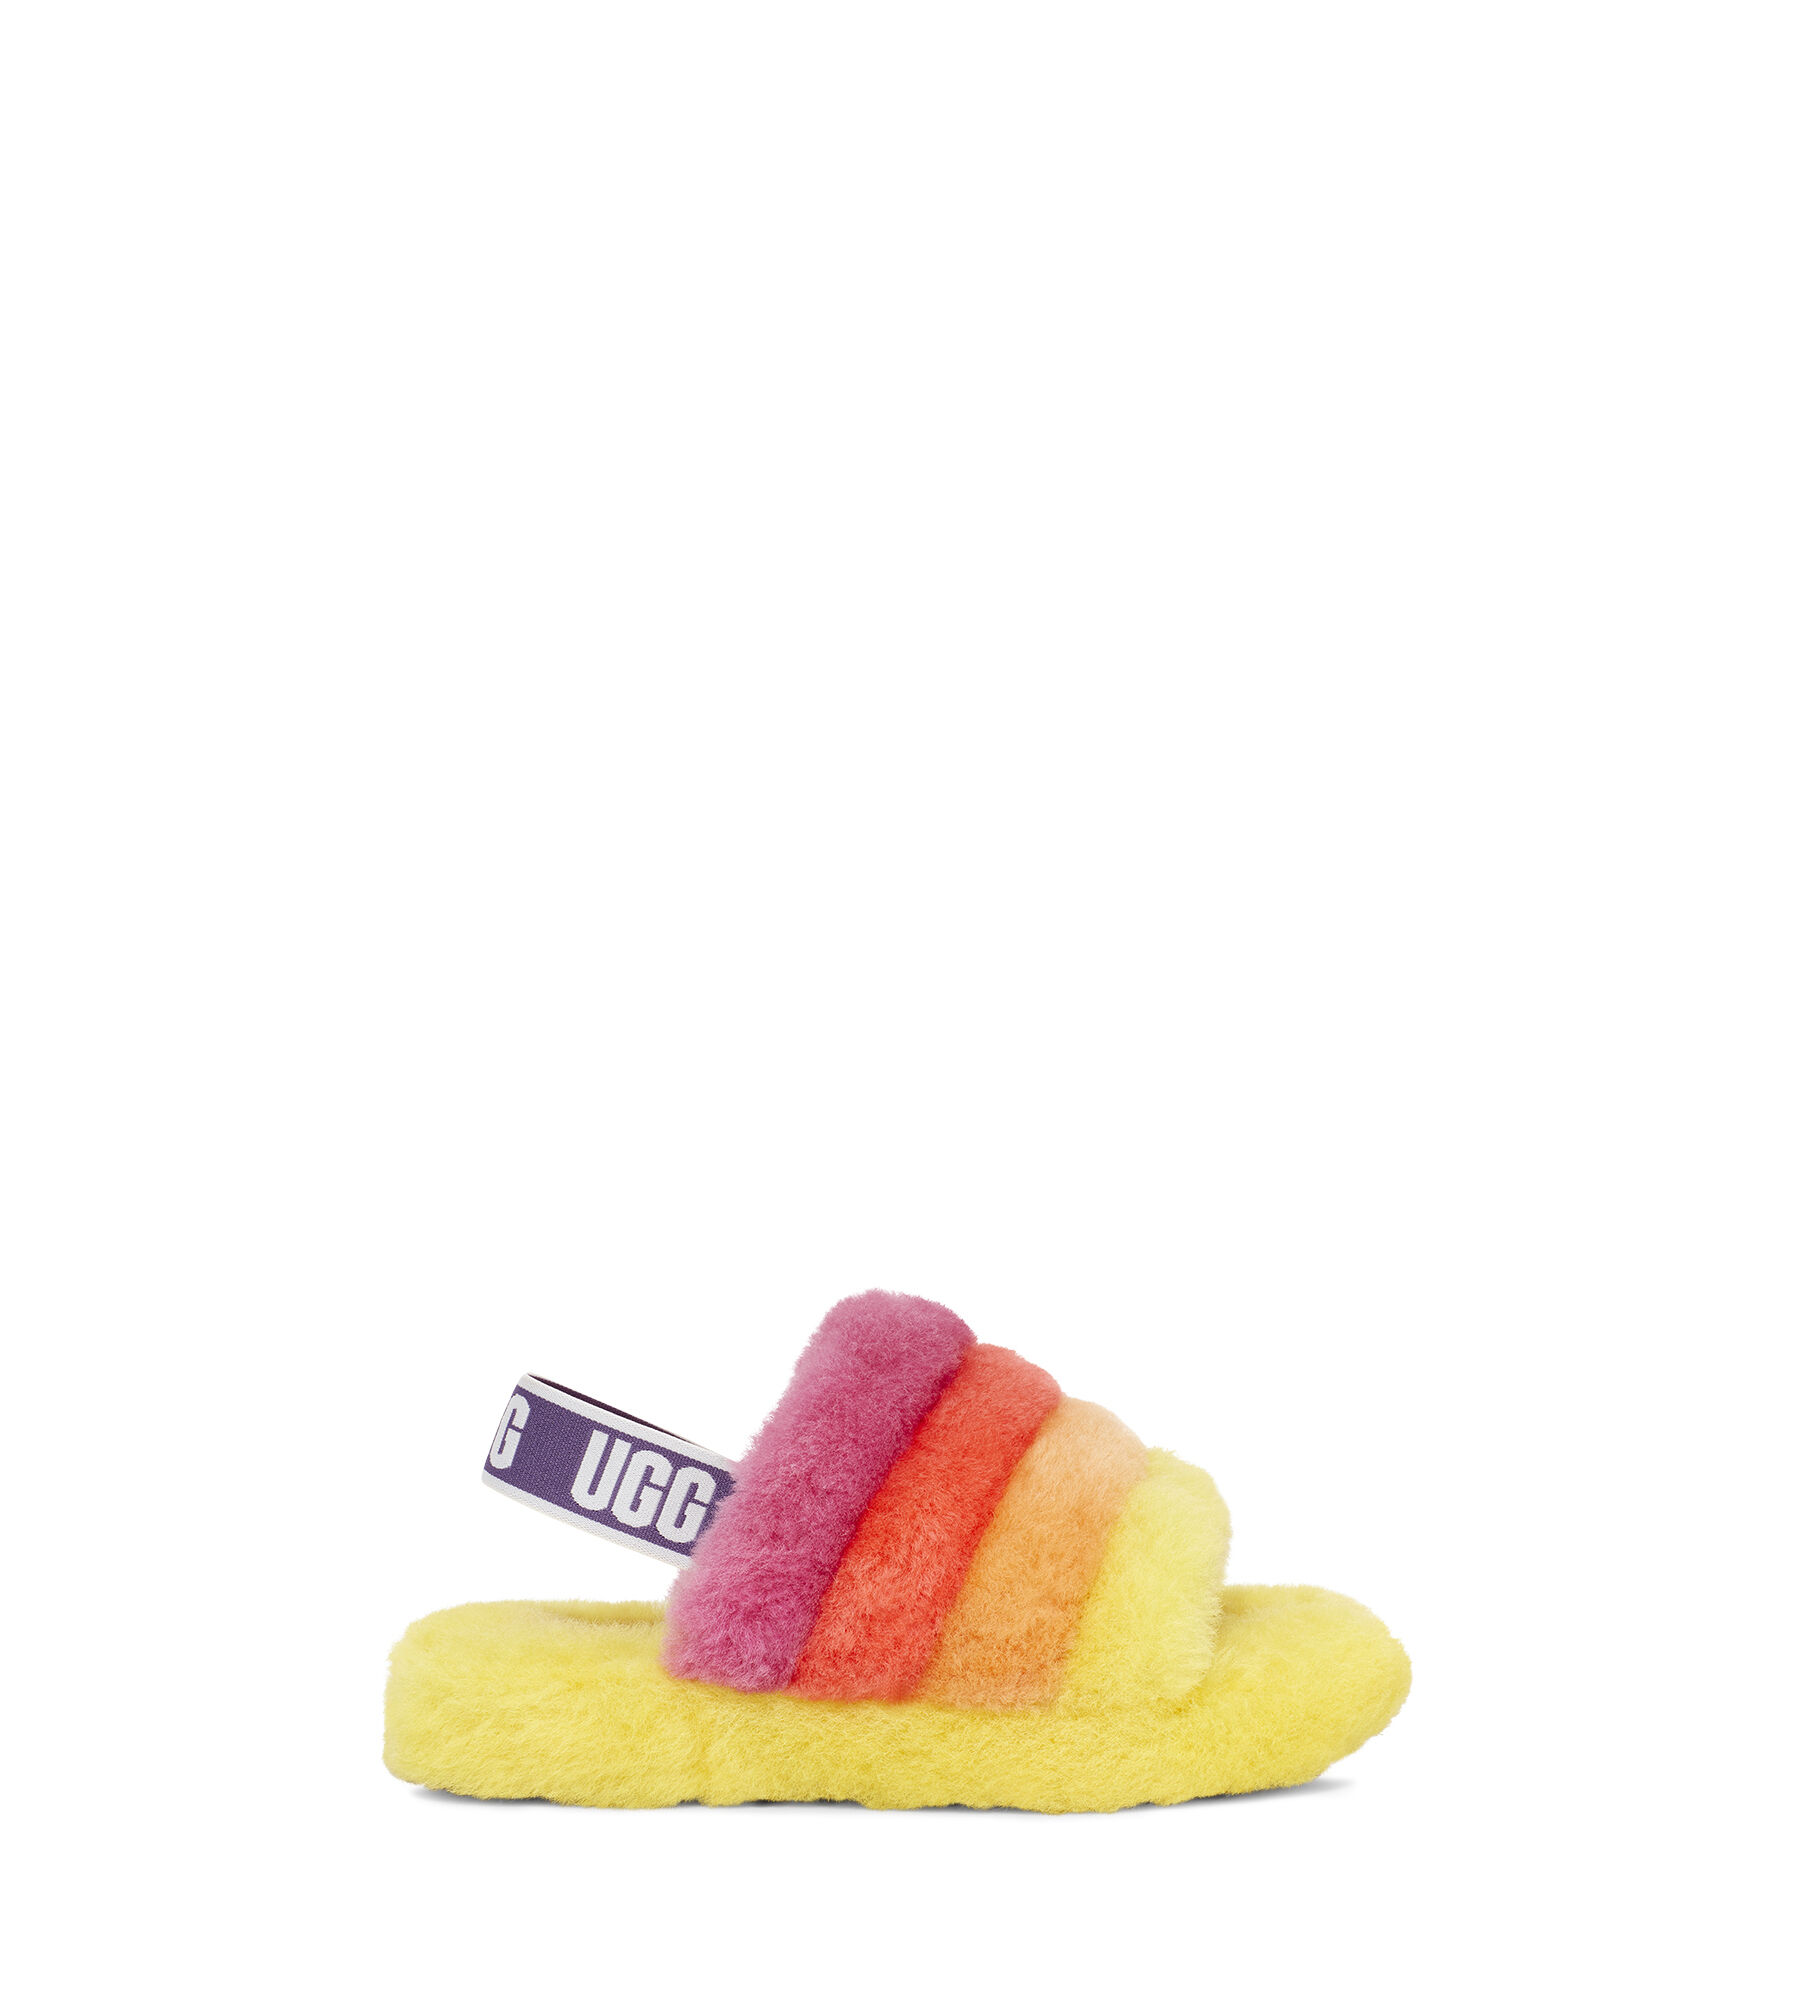 ugg slippers for toddlers